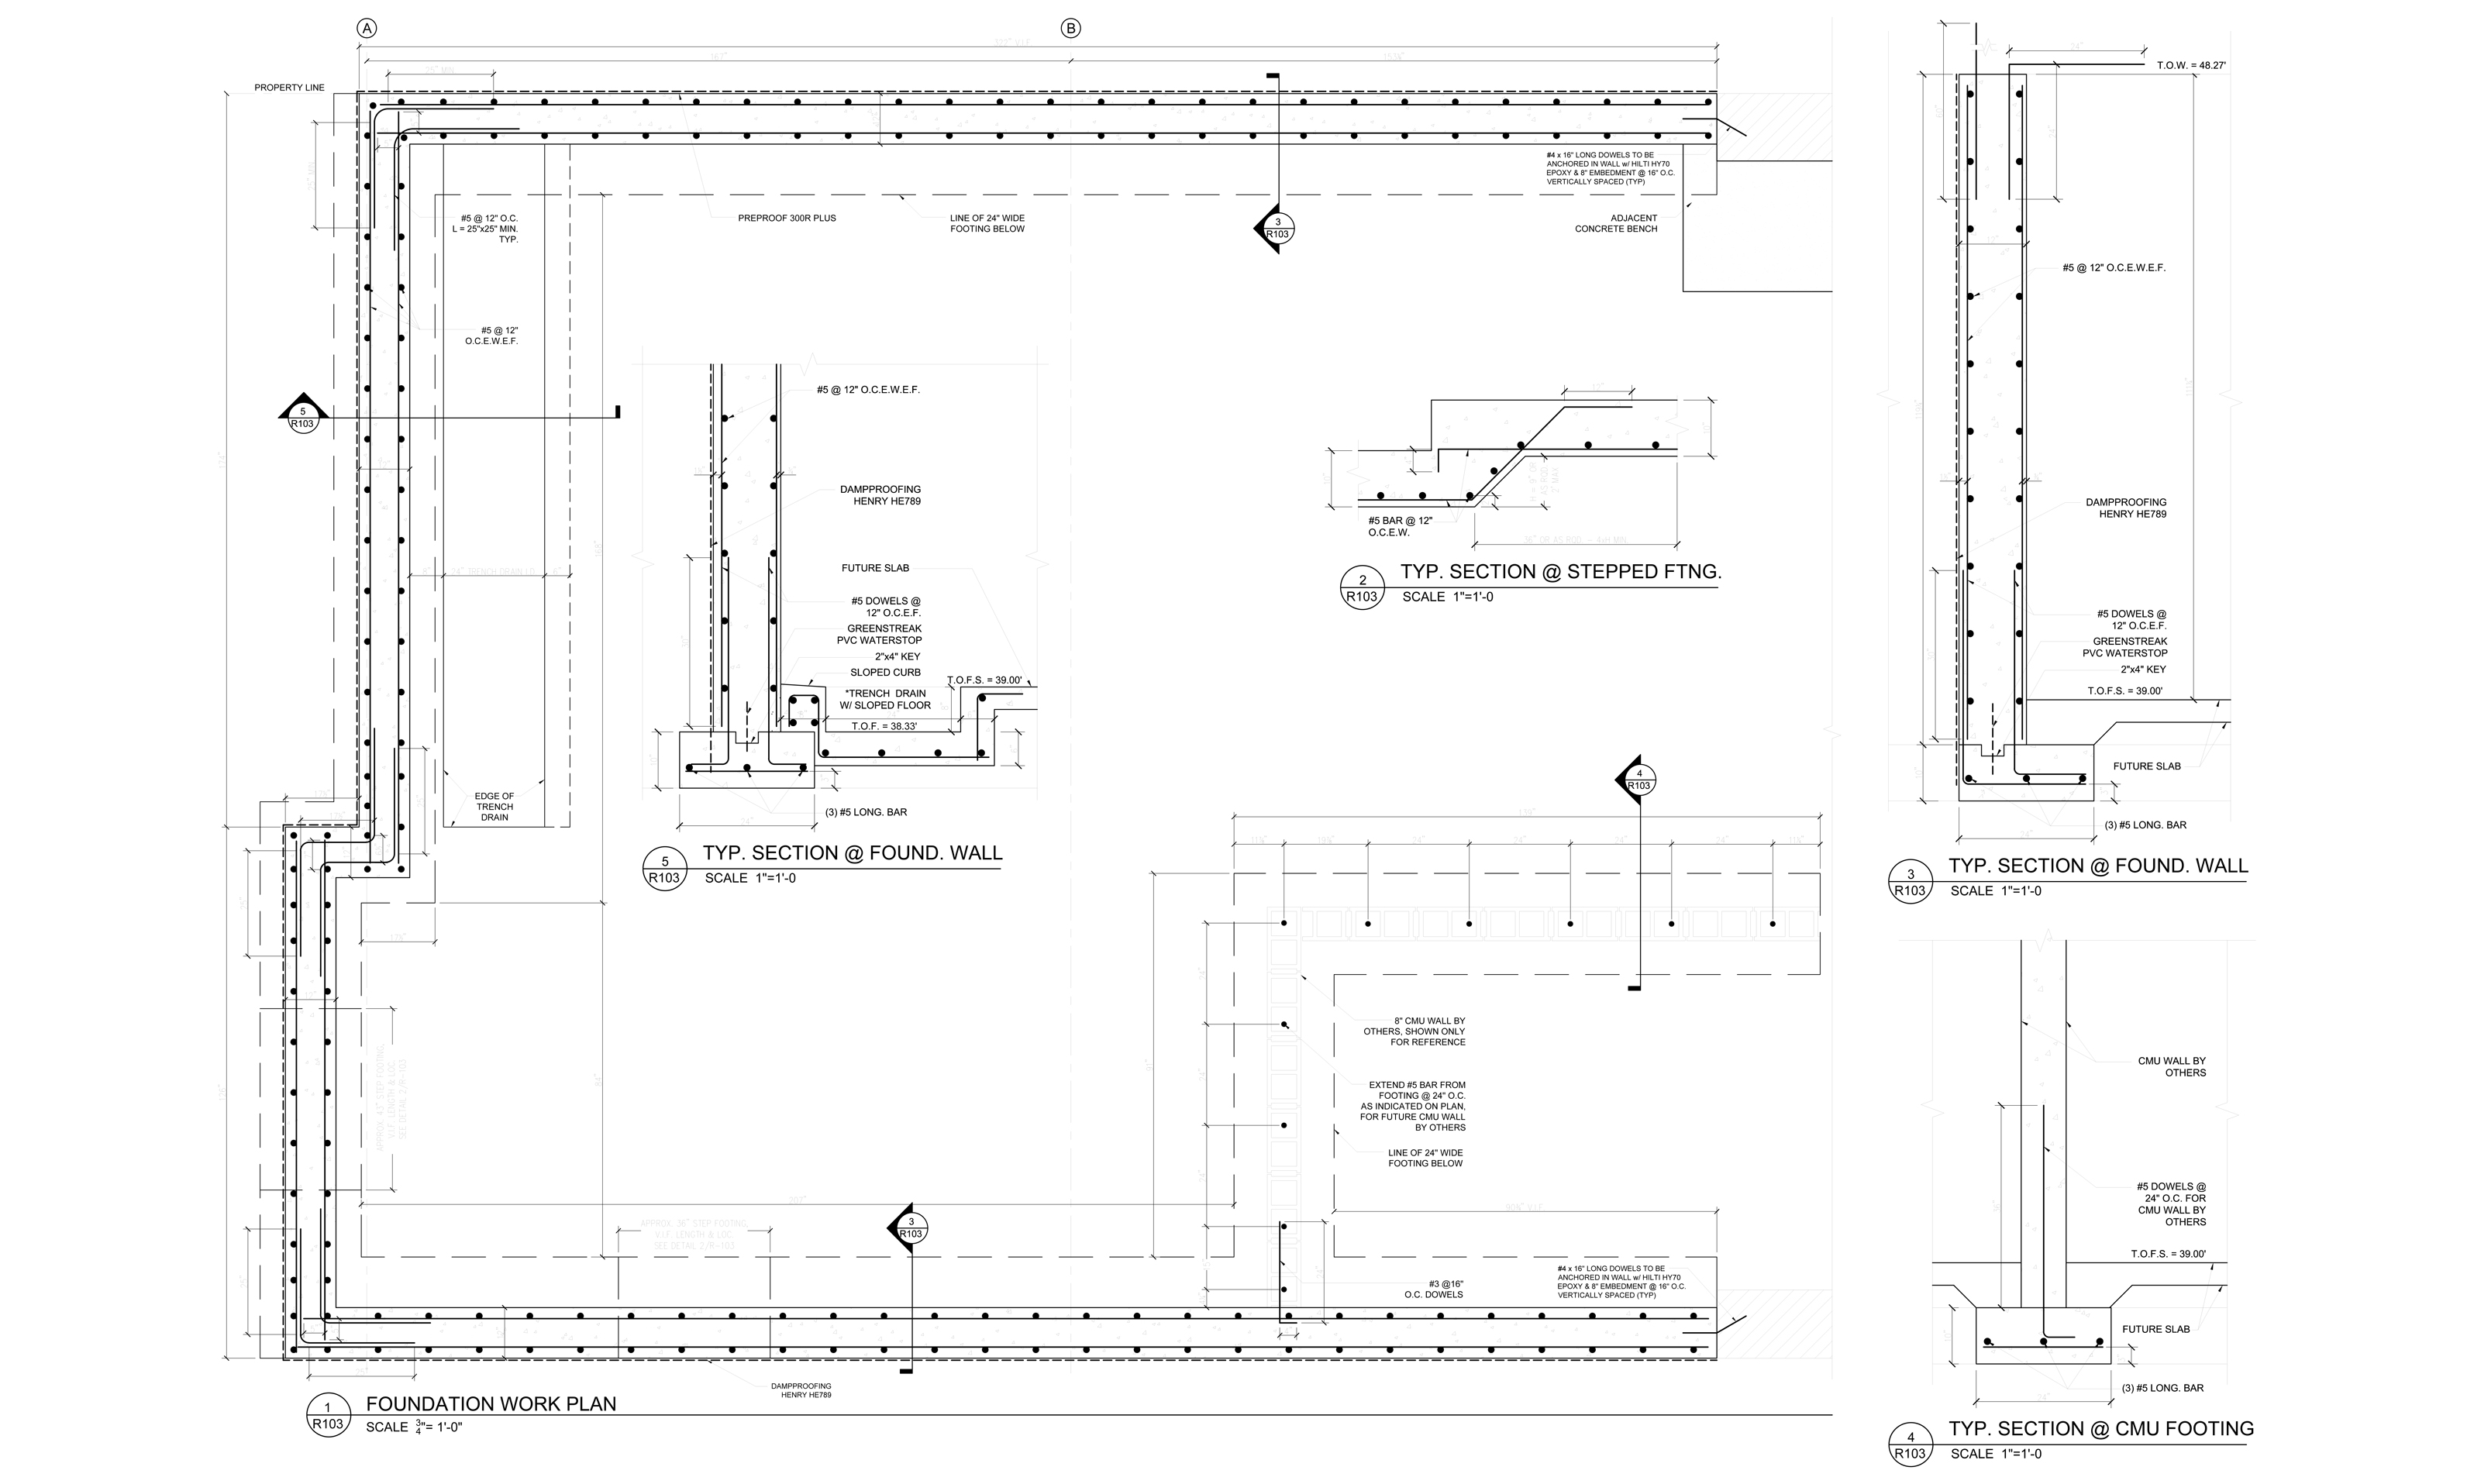 Shop Drawings Drafting For Masons Millworkers More Draftermax Hvac Drawing Key Concrete Rebar Sample 2